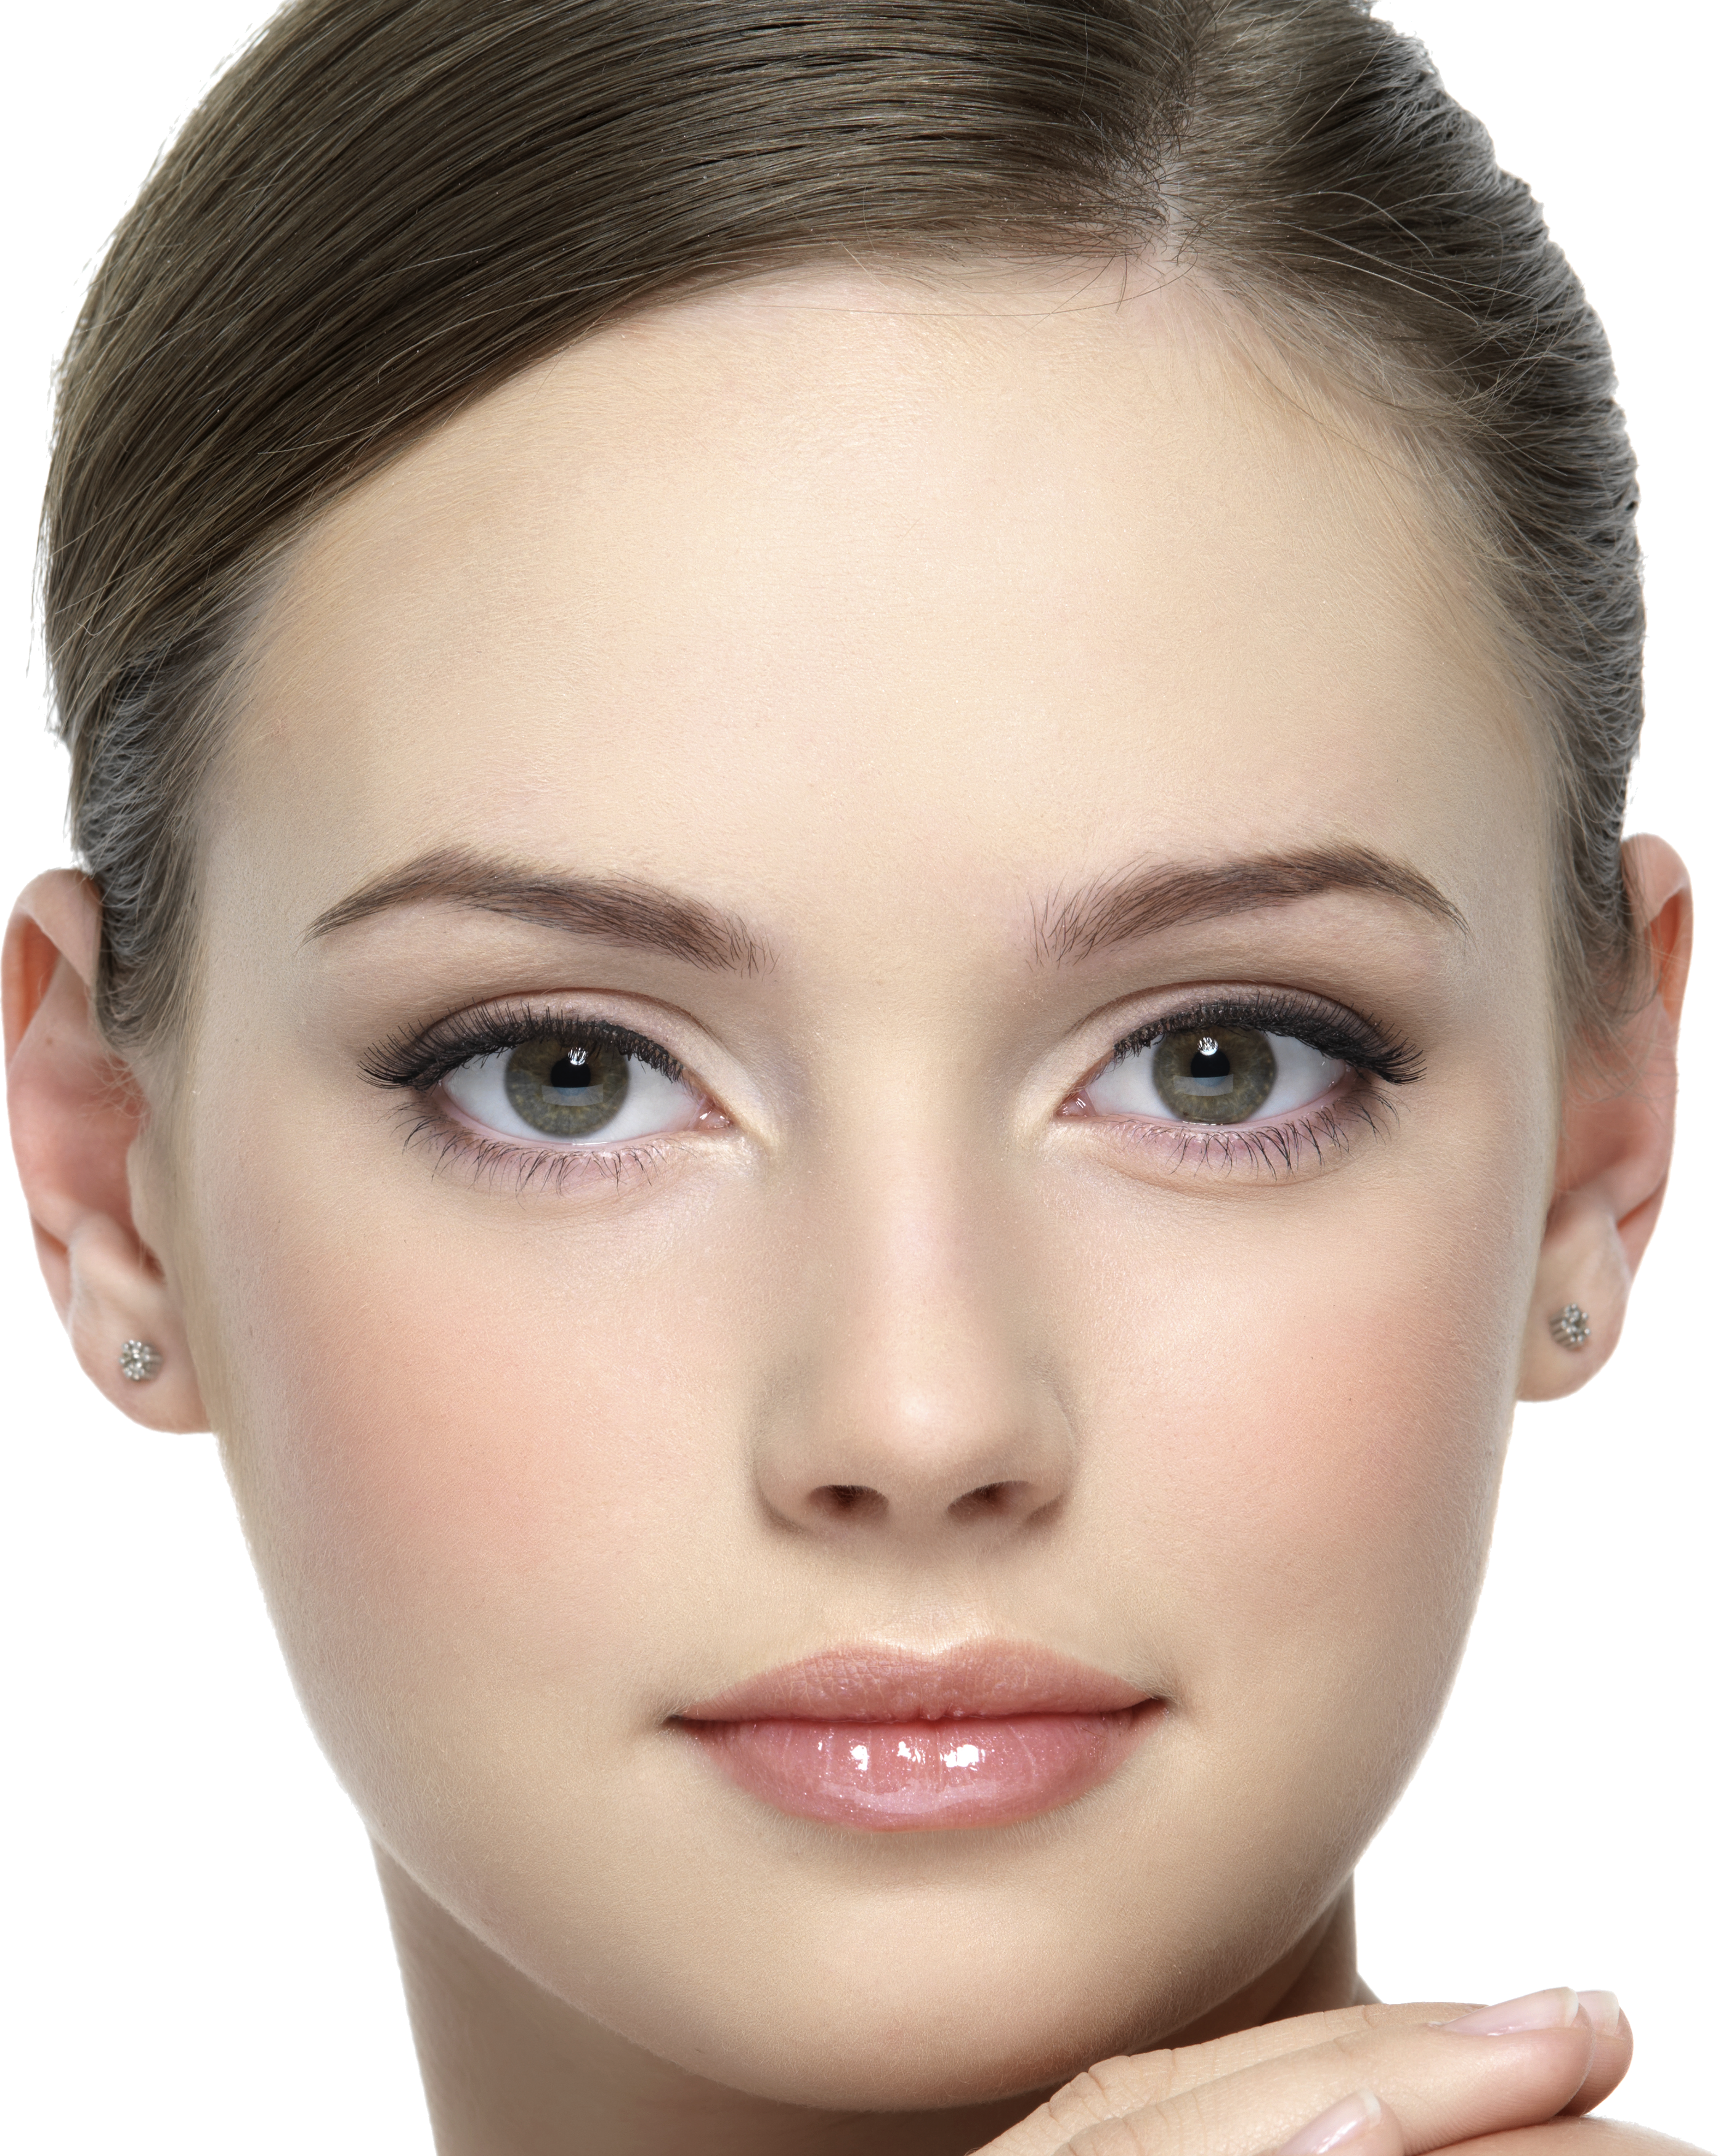 Woman face png. Image